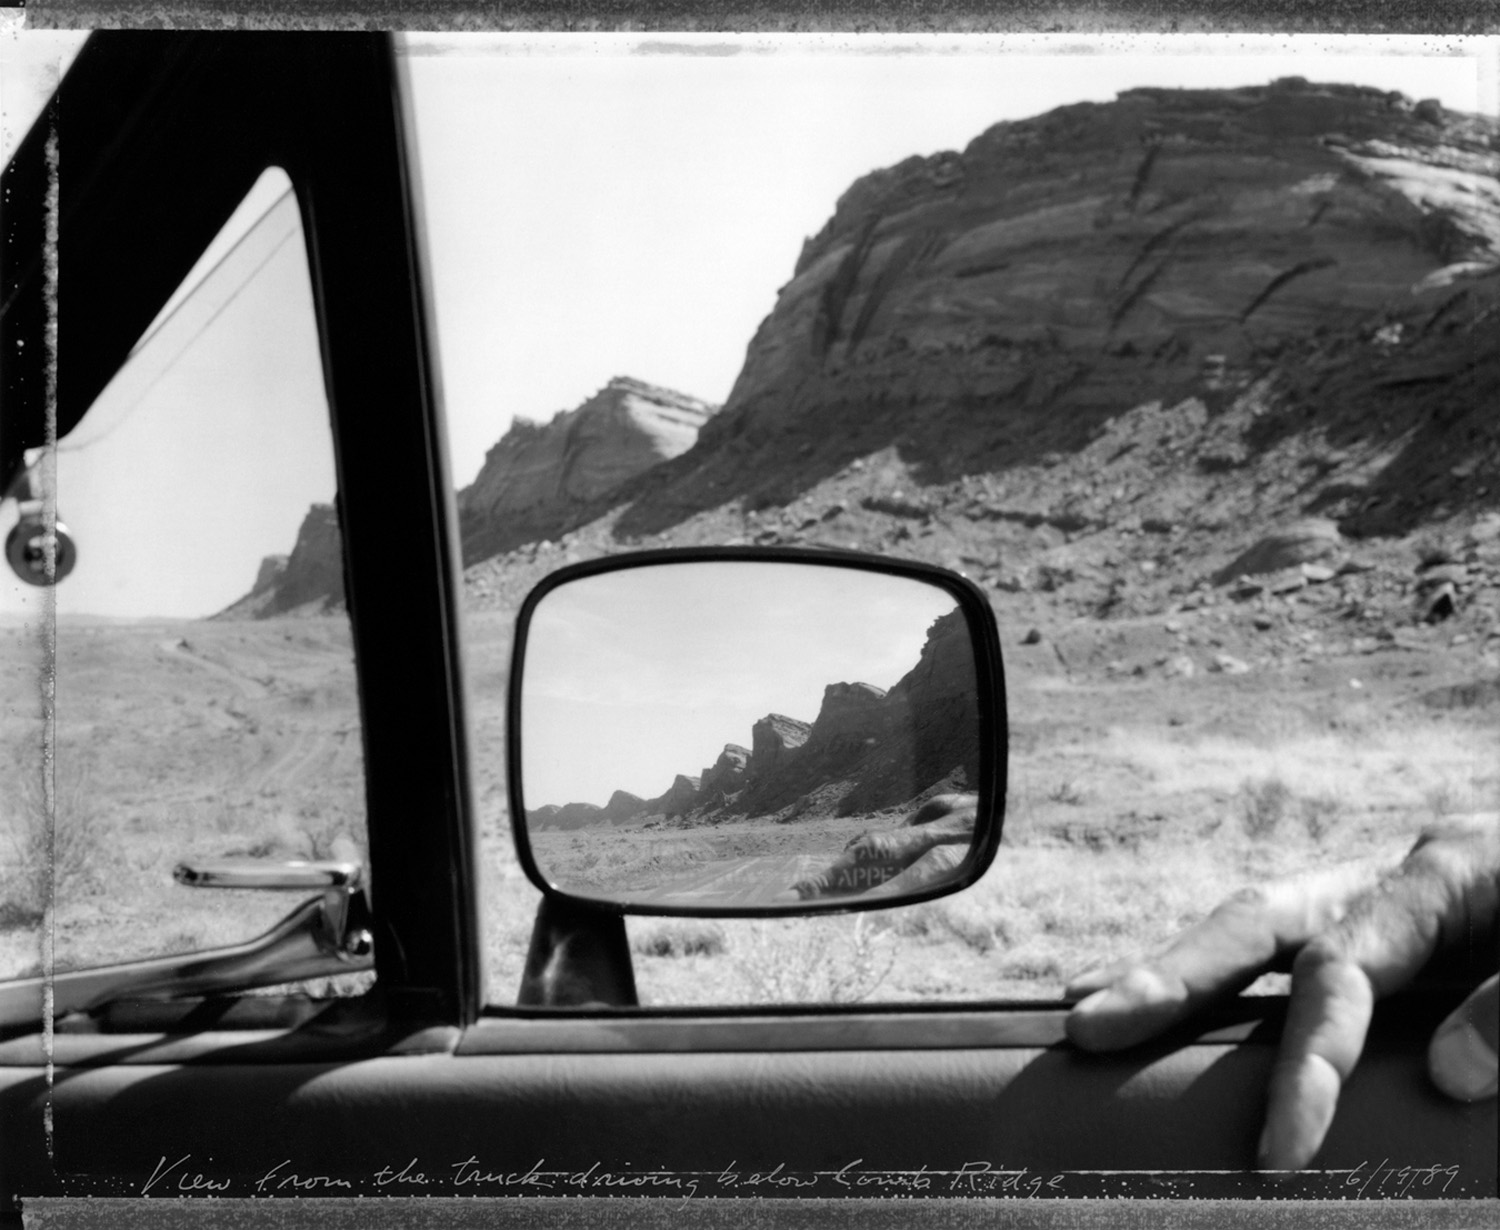 View from the truck: driving below Comb Ridge, 1989